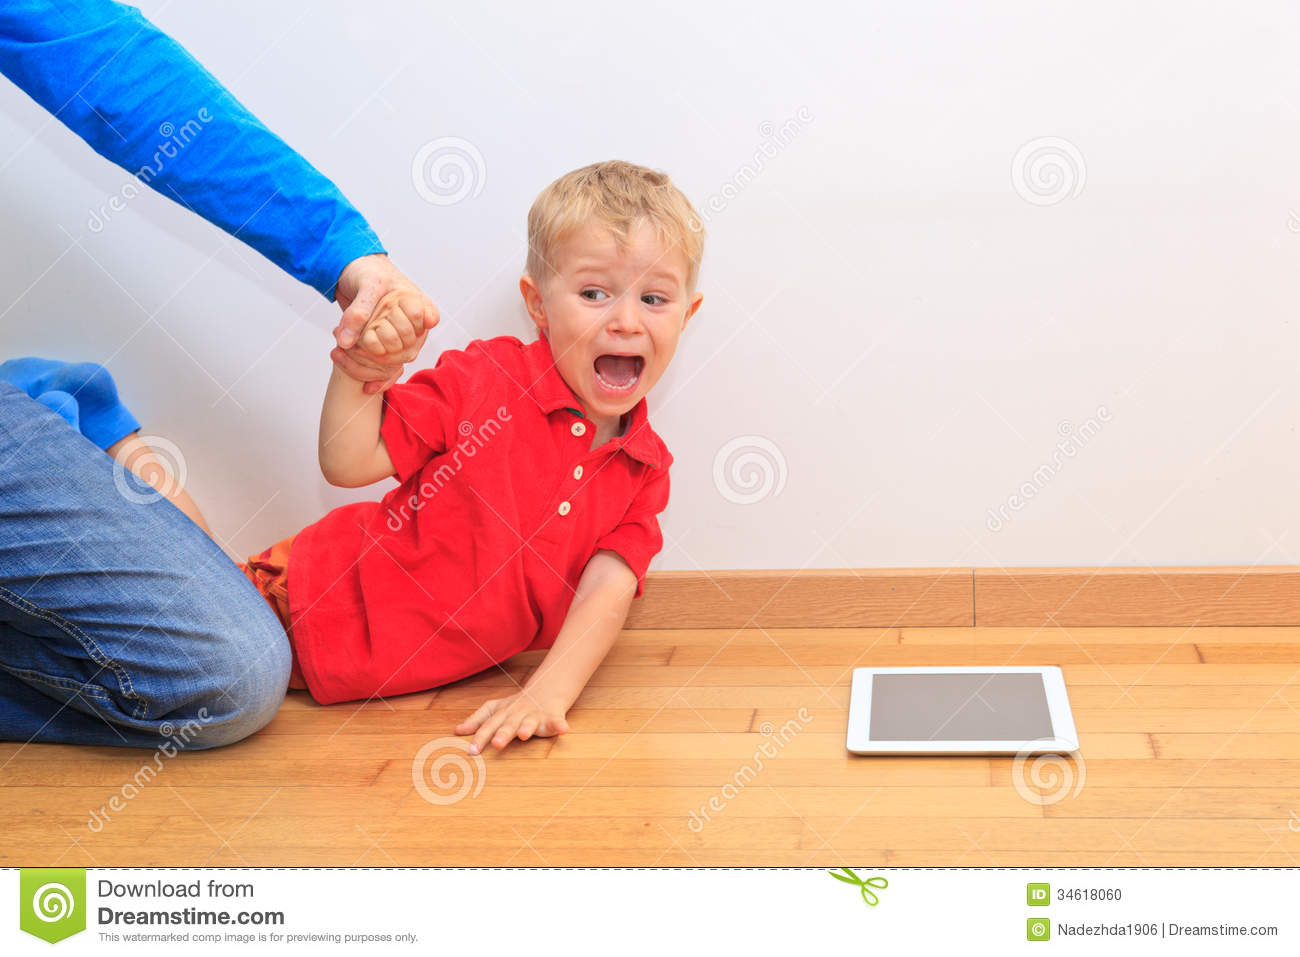 Disobedient Clipart Parent Pulling Child Touch Pad